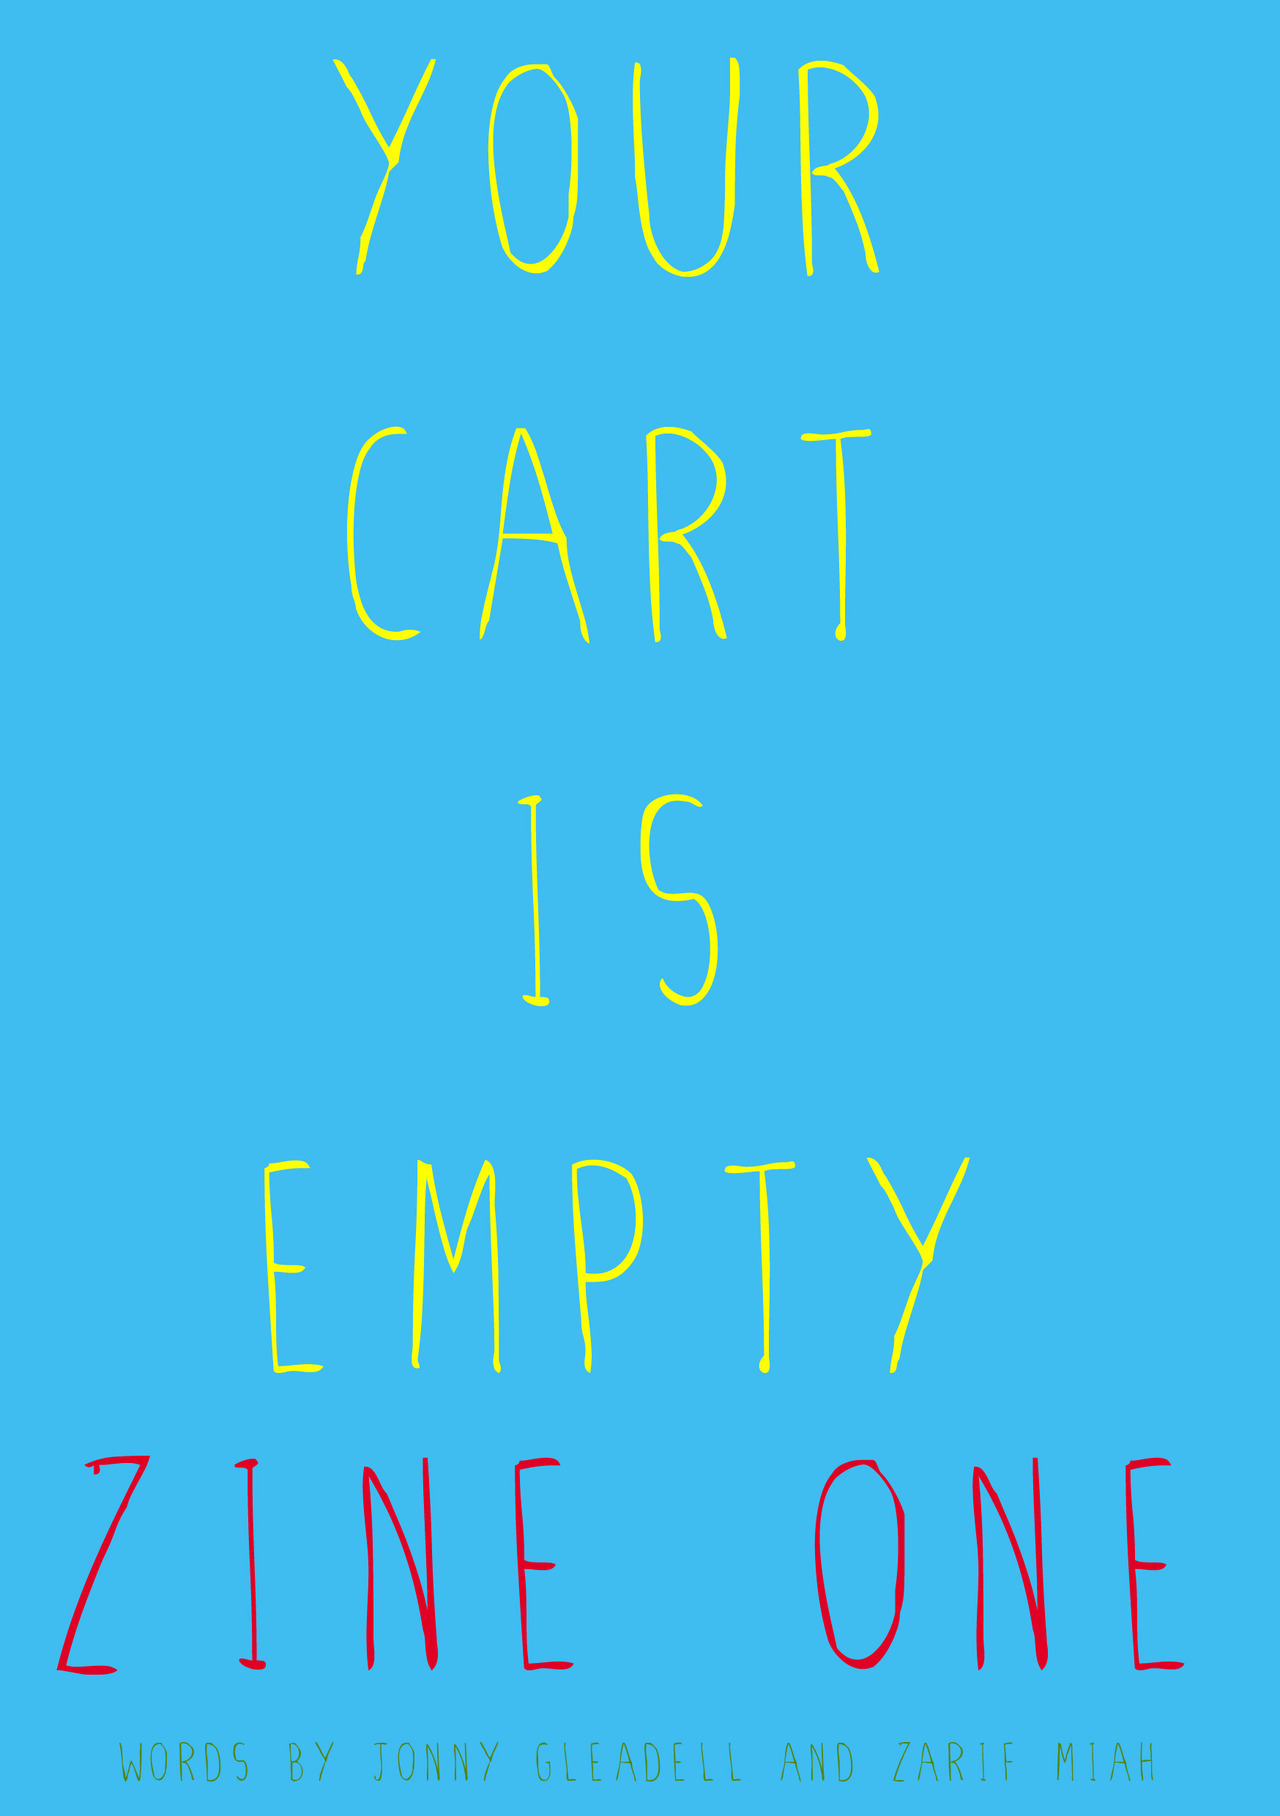 yourcartisempty:  Edition one of Your Cart Is Empty Zine (An online version) is now available for purchase for the price of £1! Featuring bands such as Tall Ships, Reno Dakota, Invalids, Wot Gorilla?, Tangled Hair any many more!We've also got bits of things like poems, rants and arts! Check it out and tell your friends! Click here to go to our store.  Hey guys, You may have noticed a lack of posts lately on this math rock blog (with only a few here and there). This is because me and a friend have been hard at work on putting together a (digital) zine!  It centres around lots of Math Rock and Emo bands so please check it out! :) Normal math rock blog posts will resume!